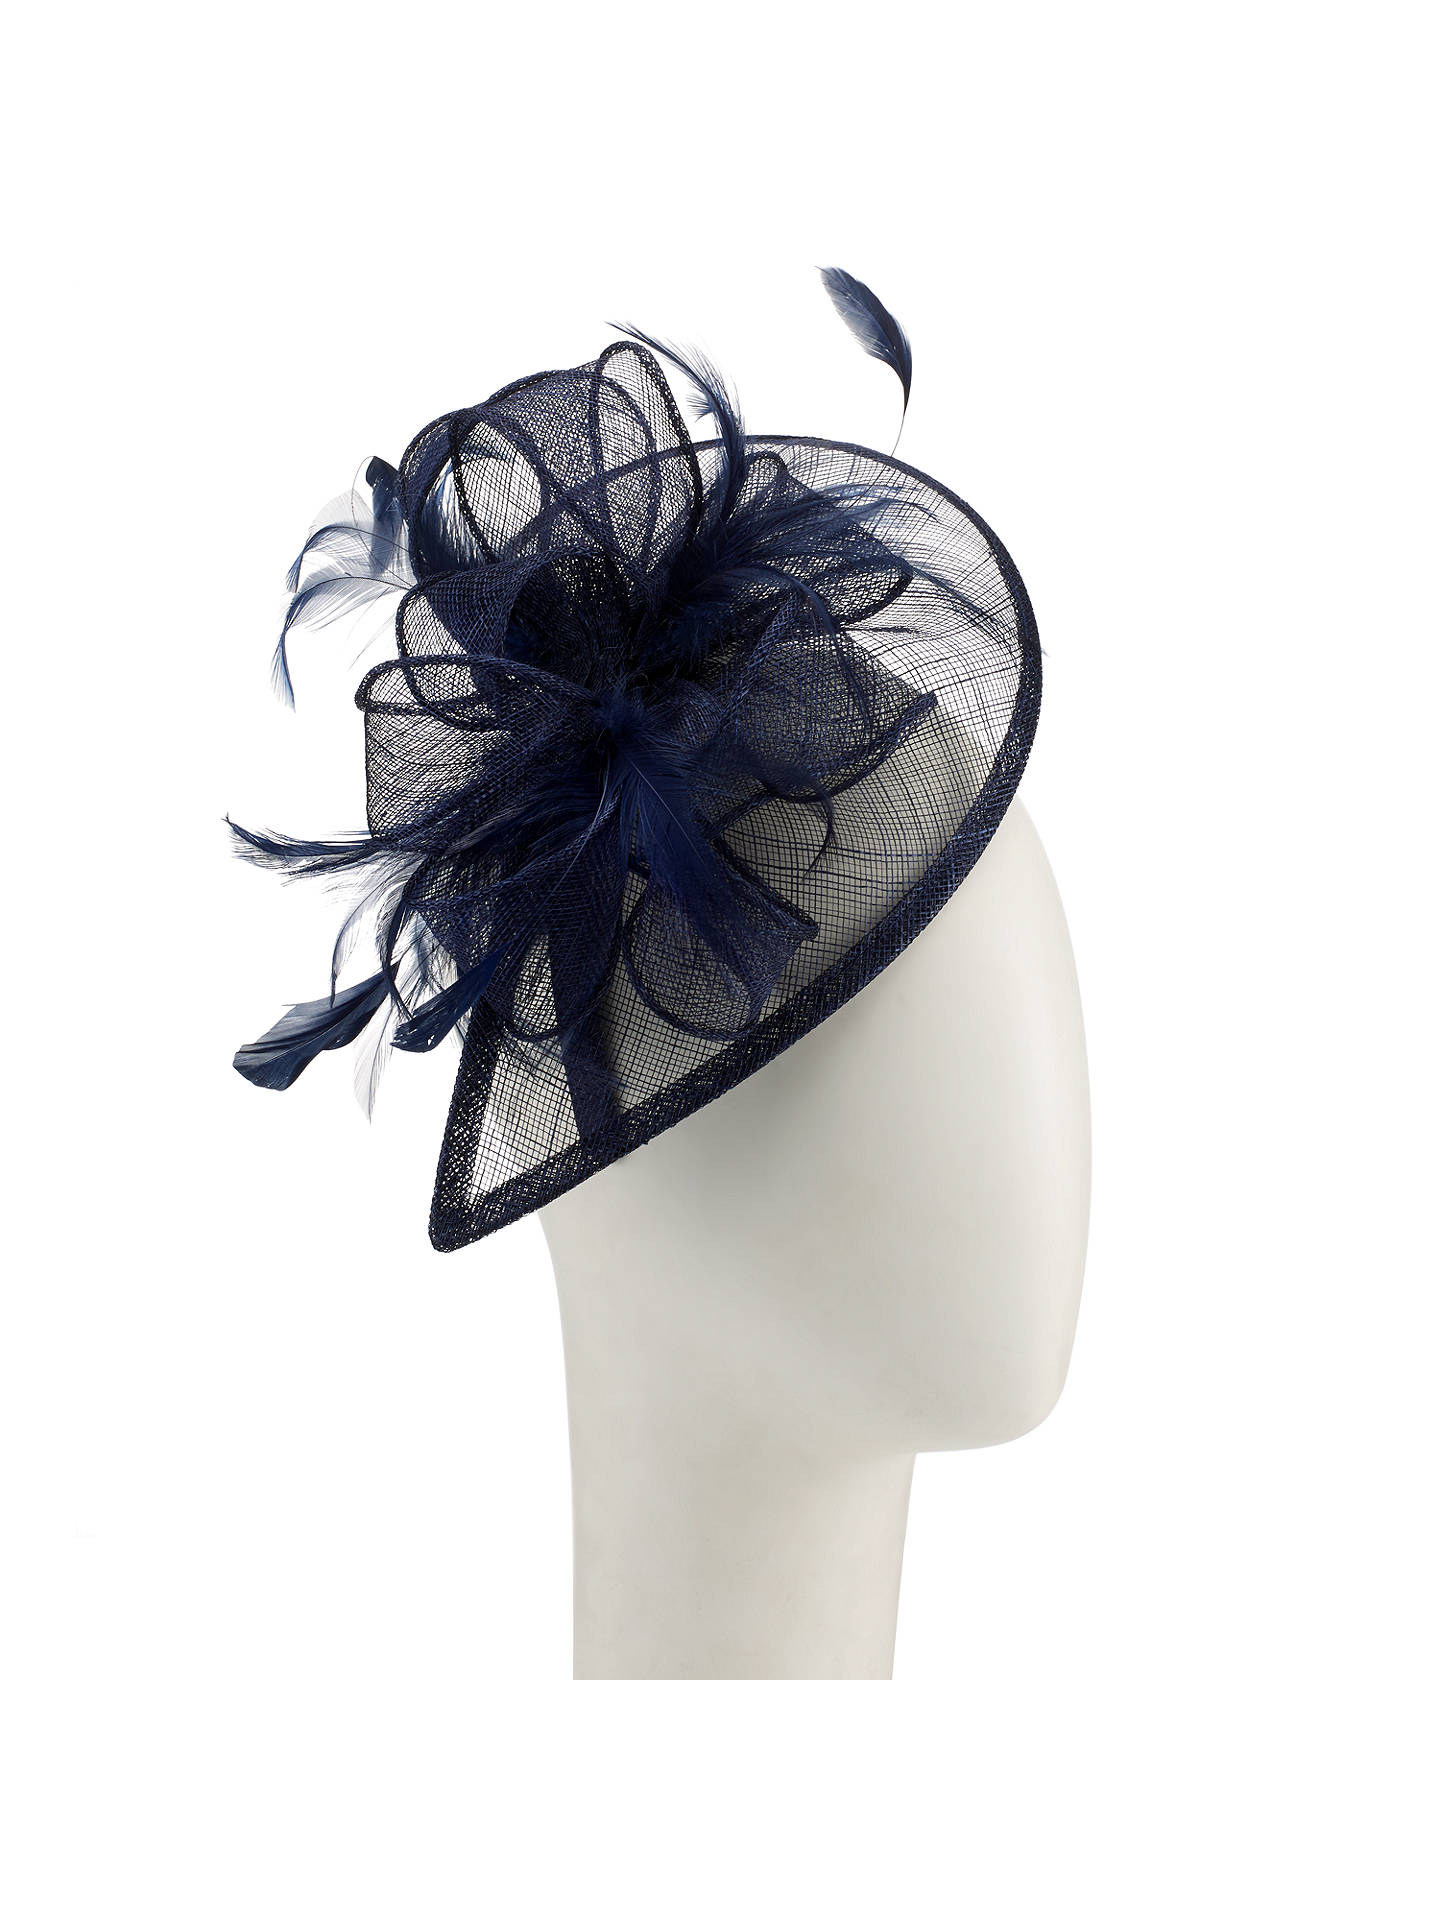 BuyJohn Lewis Teardrop Fascinator, Navy Online at johnlewis.com